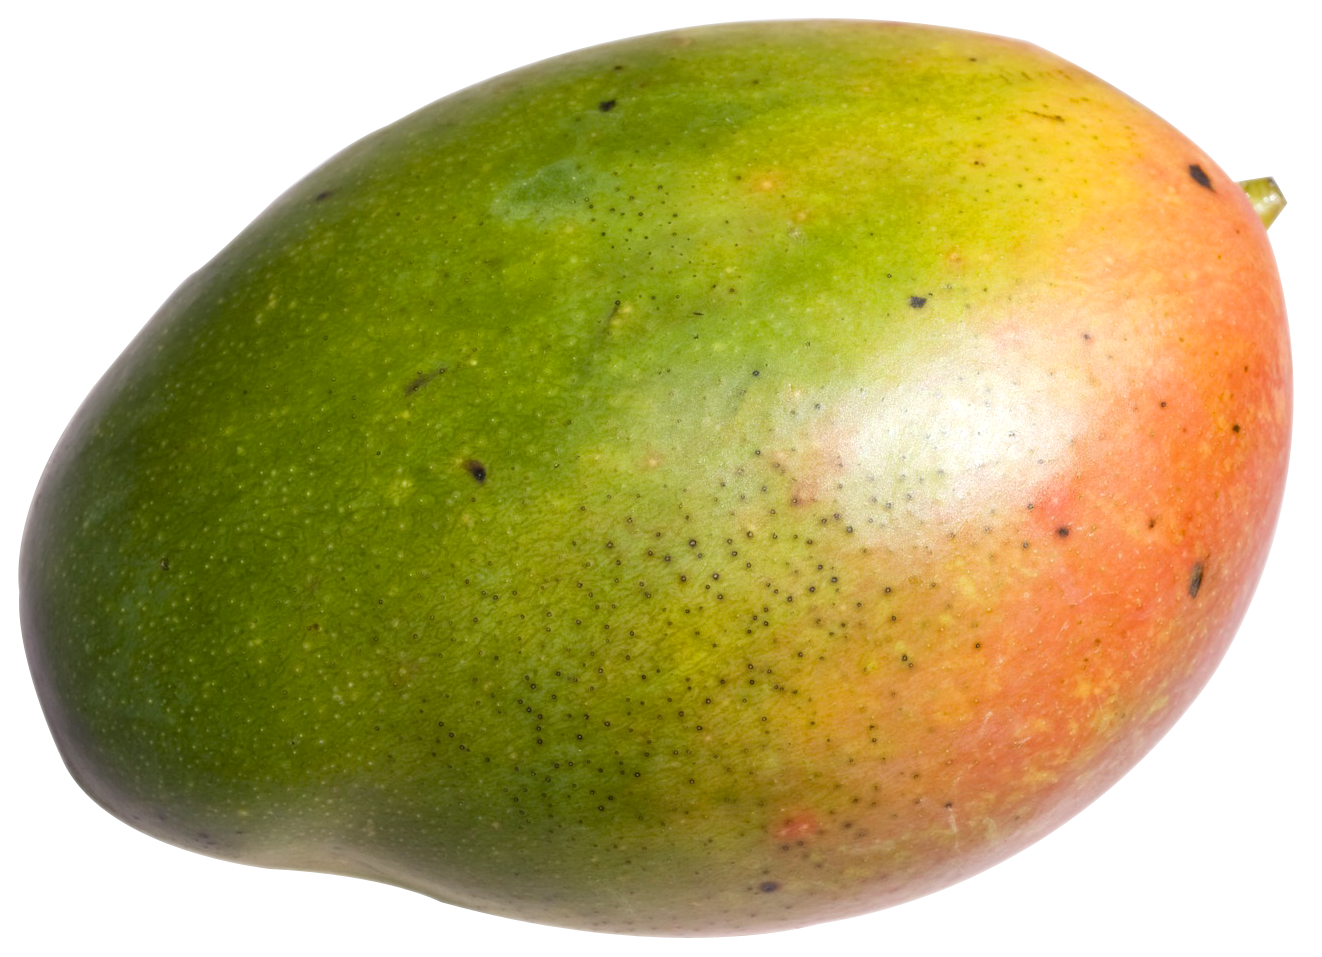 Green mango png. Transparent free images only